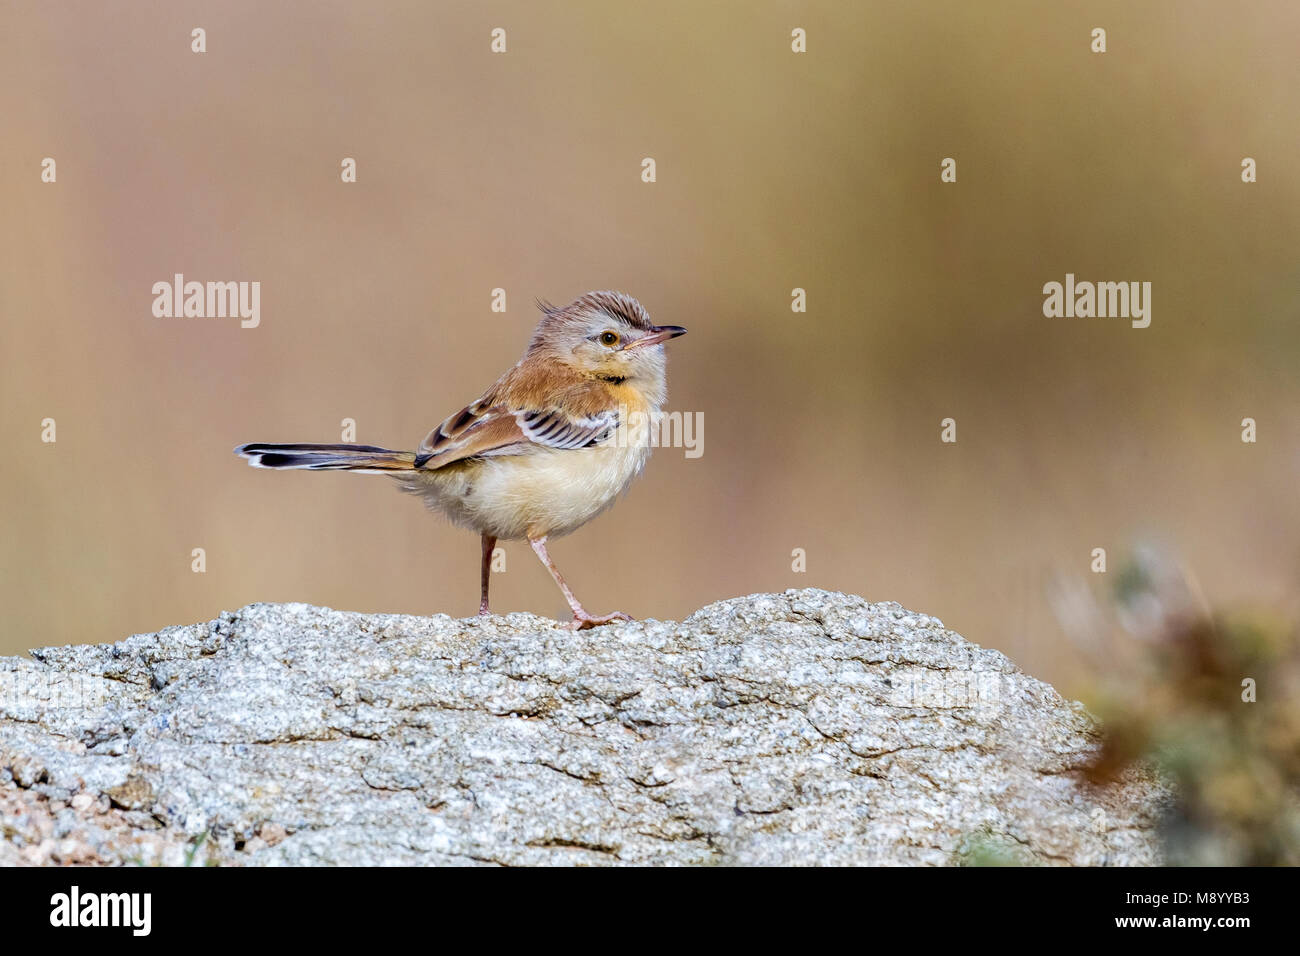 Juvenile Cricket Longtail sitting on a rock in Oued Jenna, Western Sahara. - Stock Image